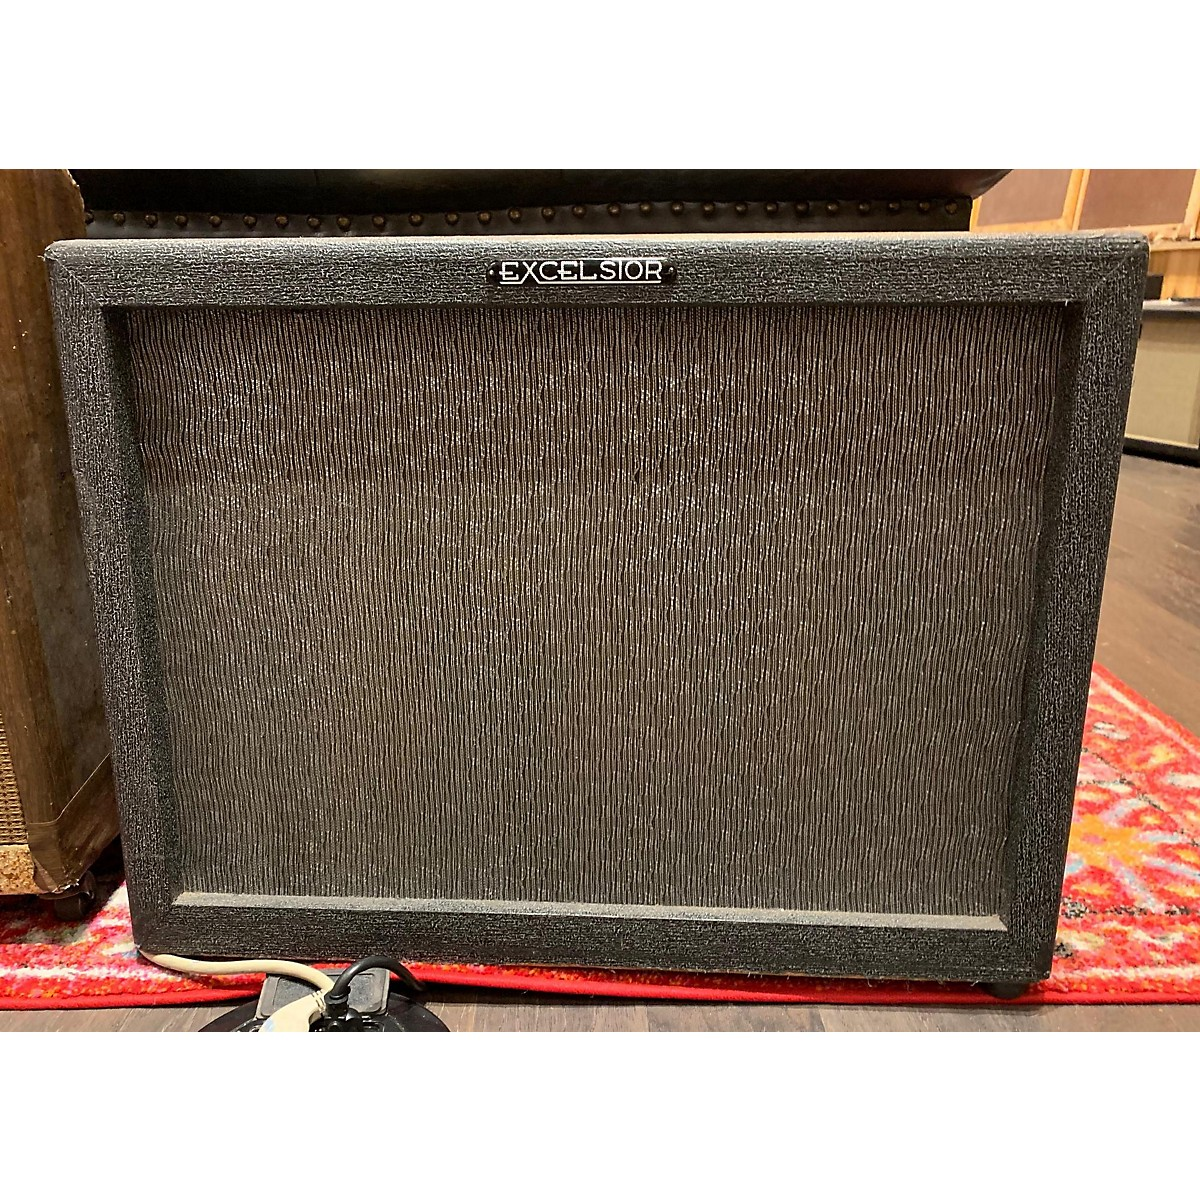 In Store Vintage Vintage 1960s Excelsior AMERICANA Tube Guitar Combo Amp